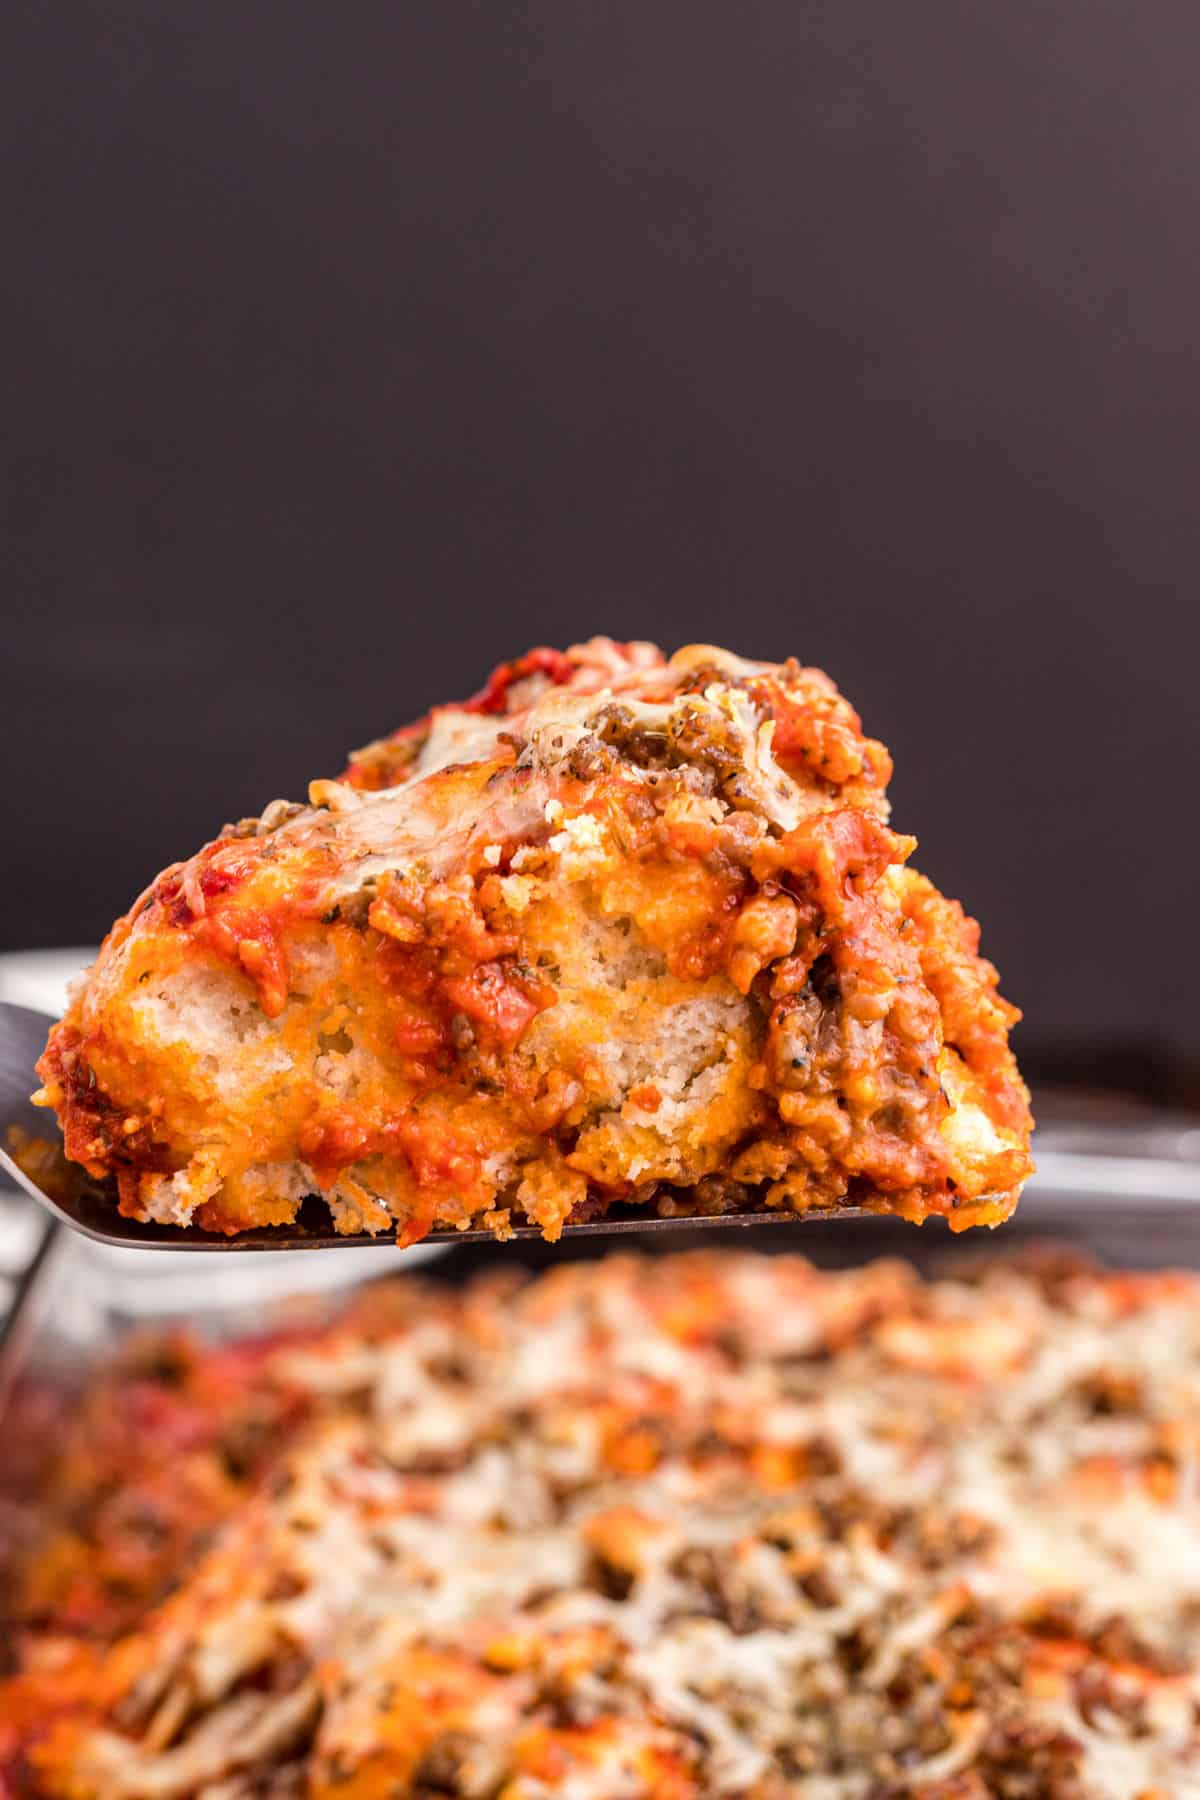 Pizza casserole being served with spatula out of baking dish.